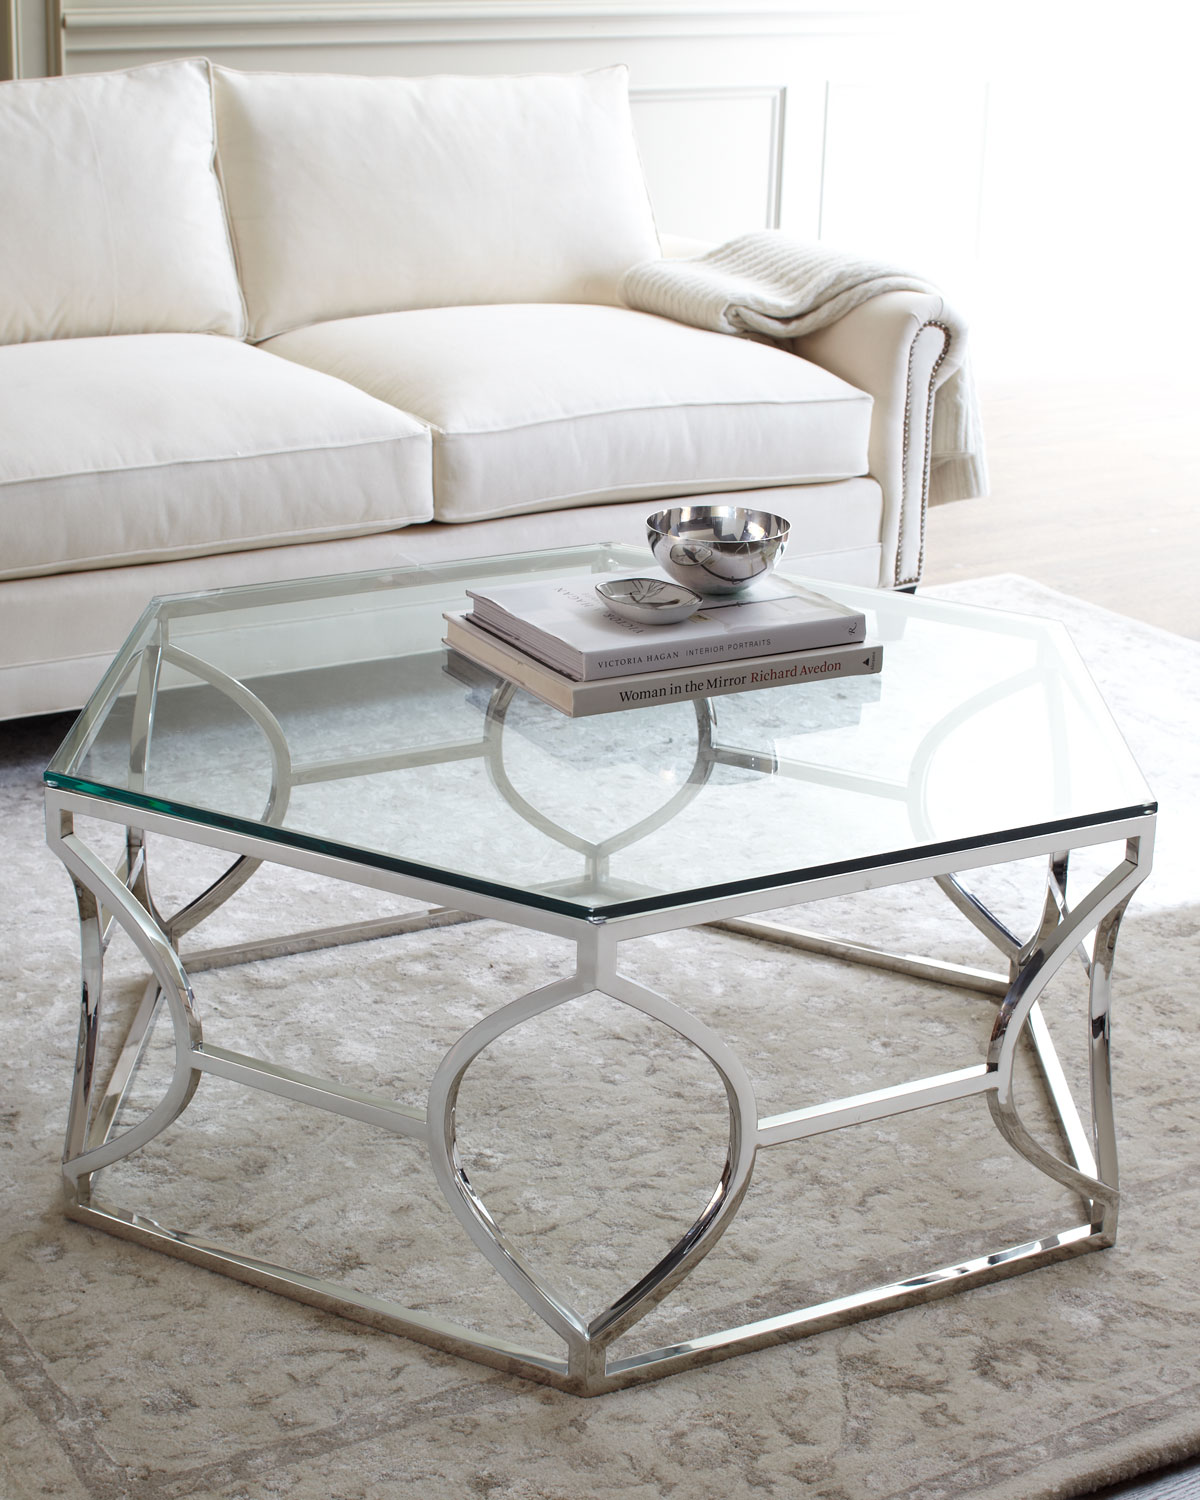 Geometric coffee table is a must-have item in a contemporary living space